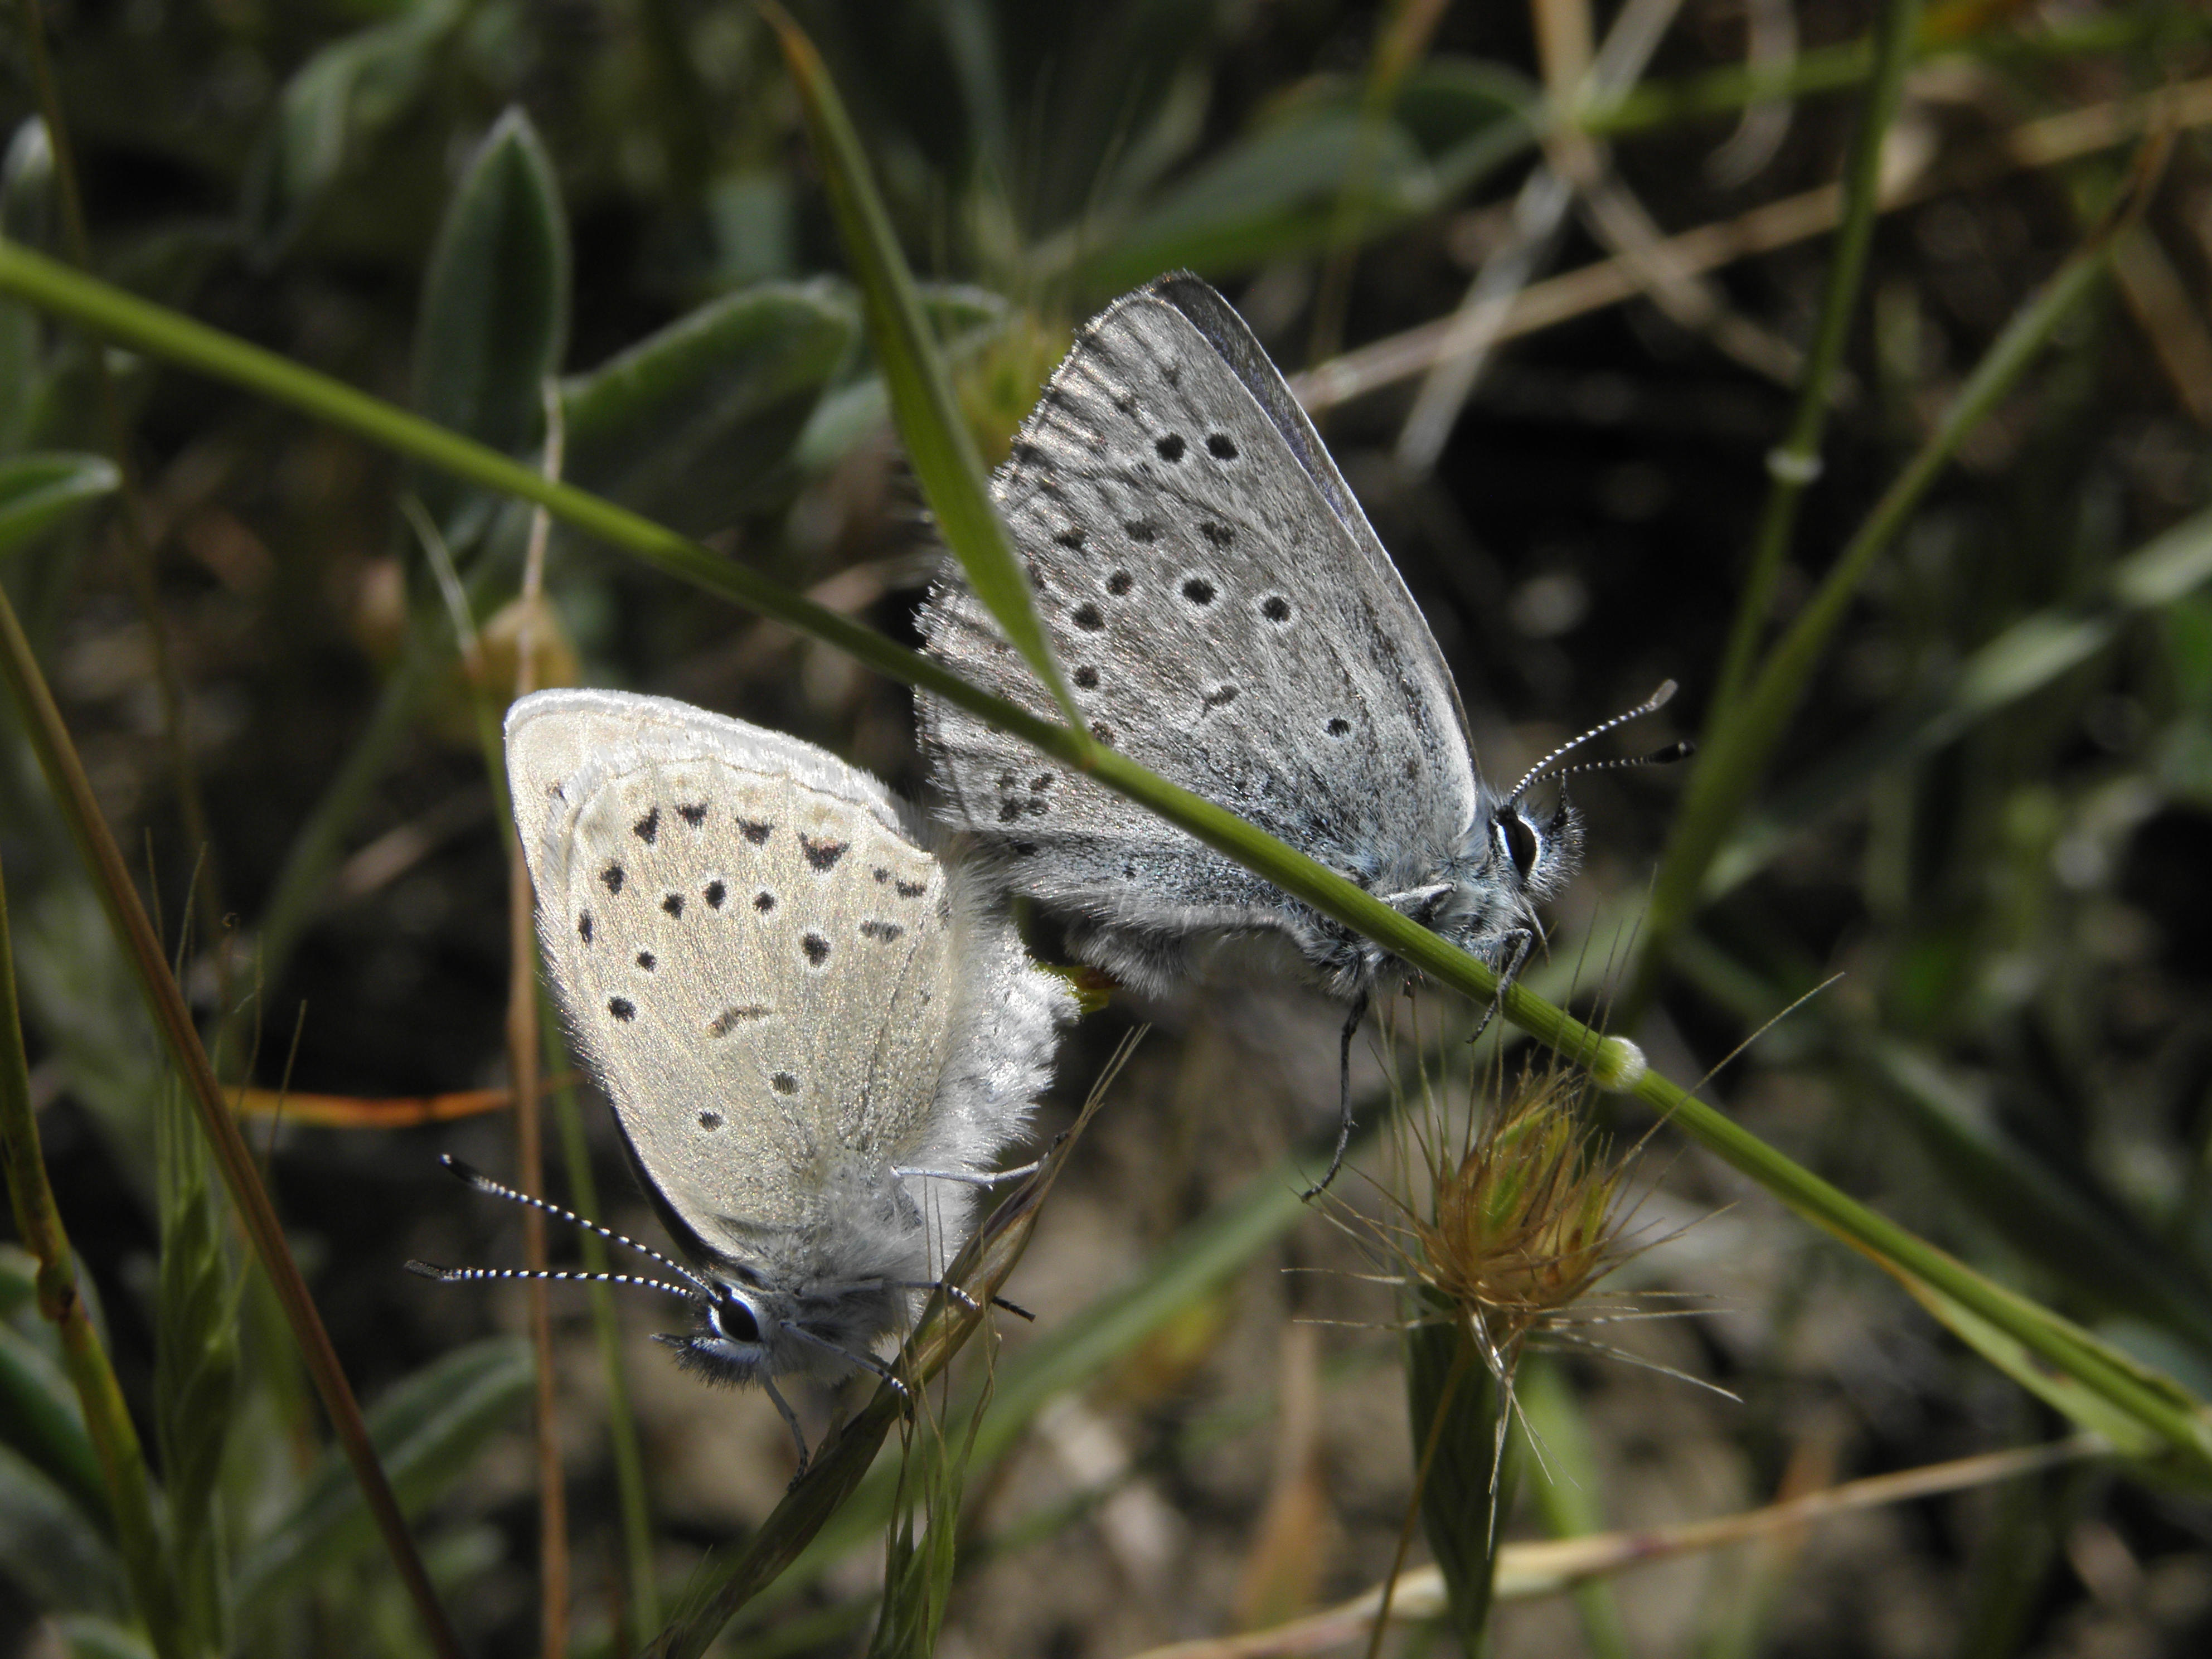 Two mission blue butterflies face opposite each other.